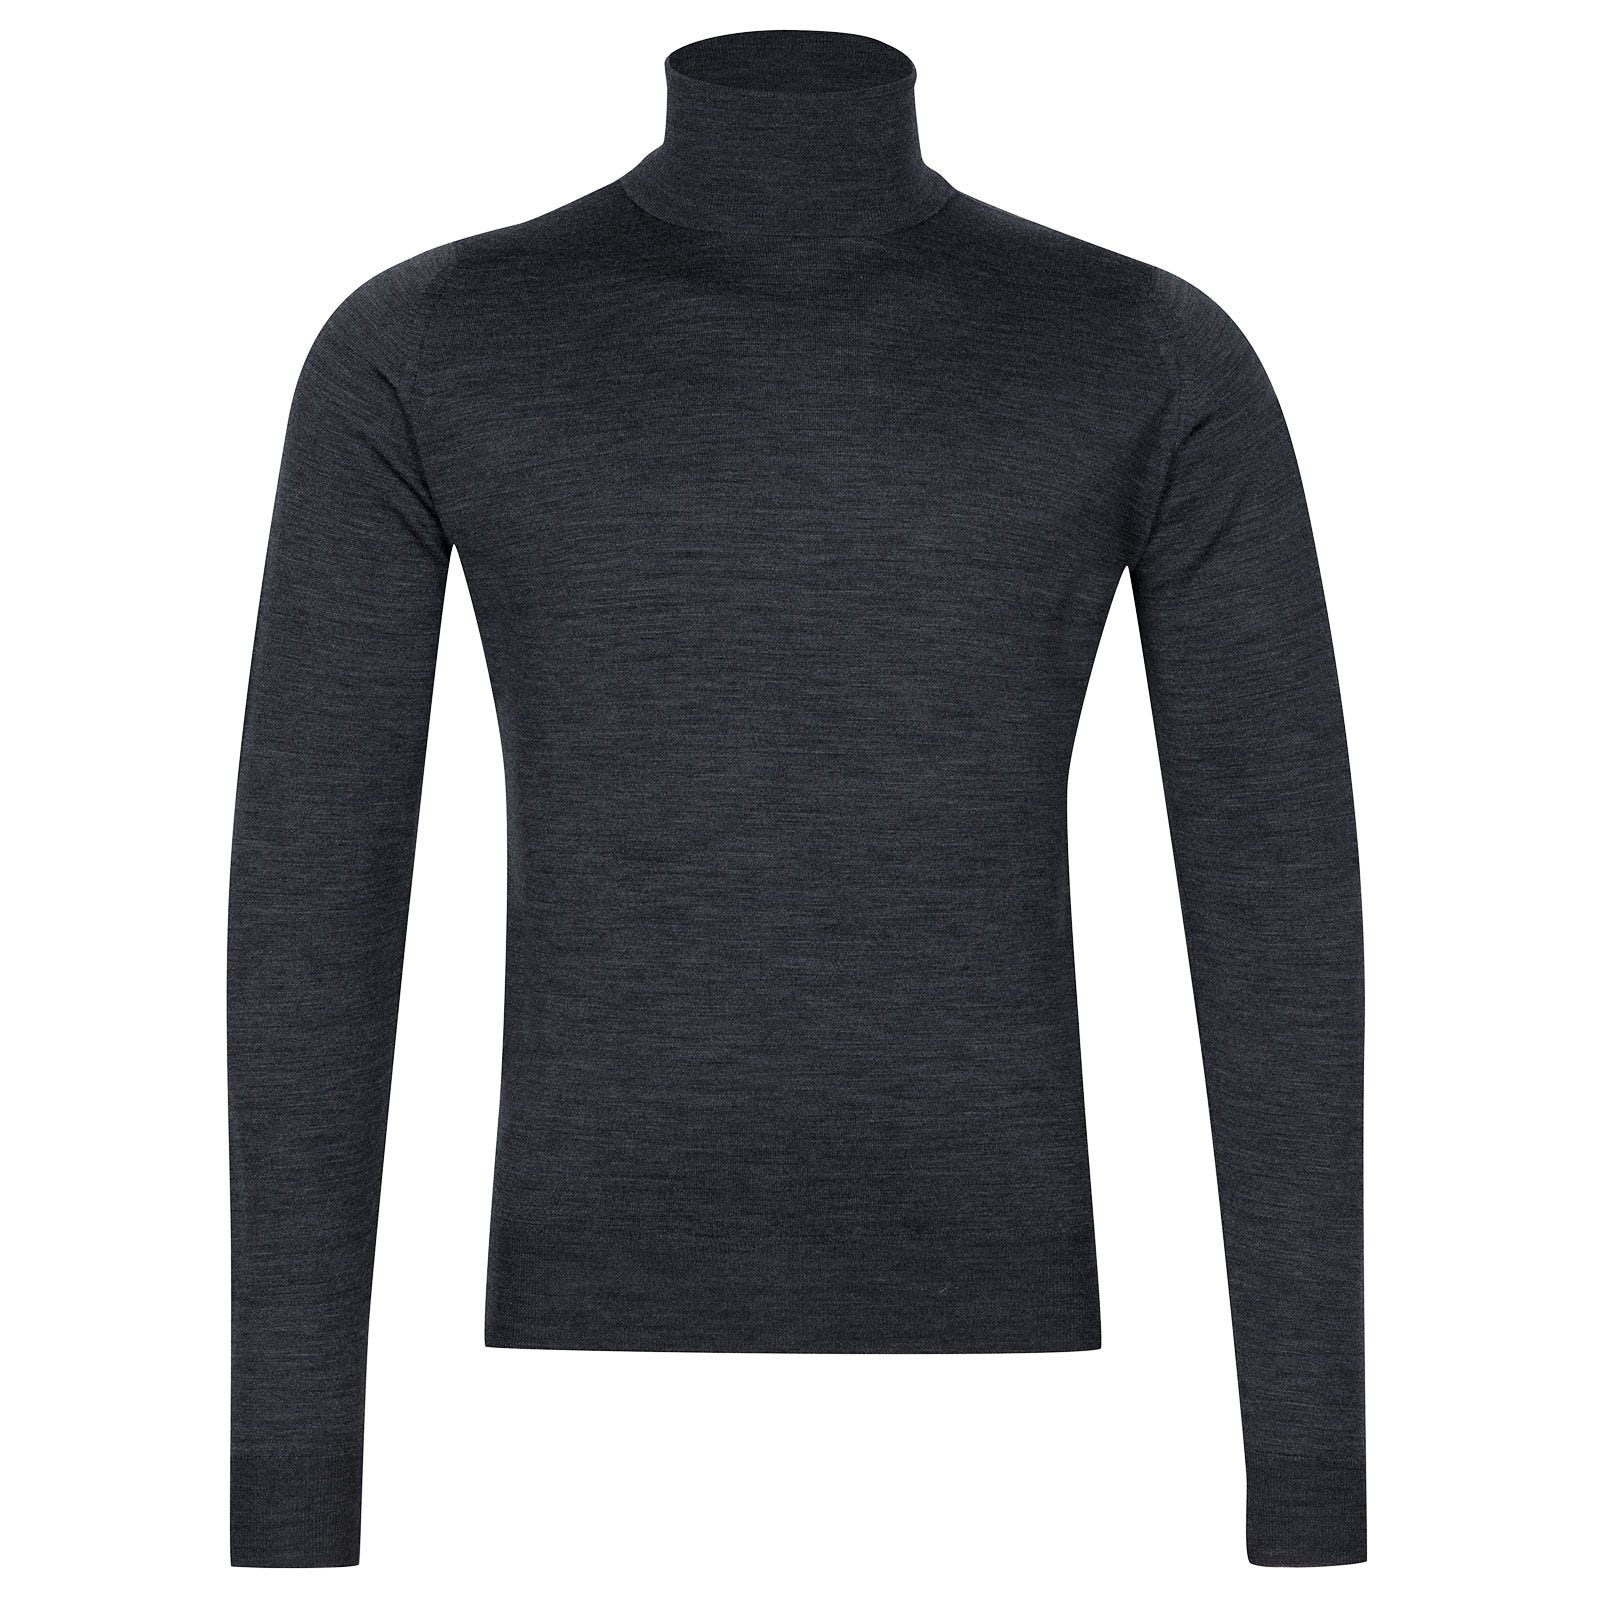 John Smedley Orta Merino Wool Pullover in Charcoal-S